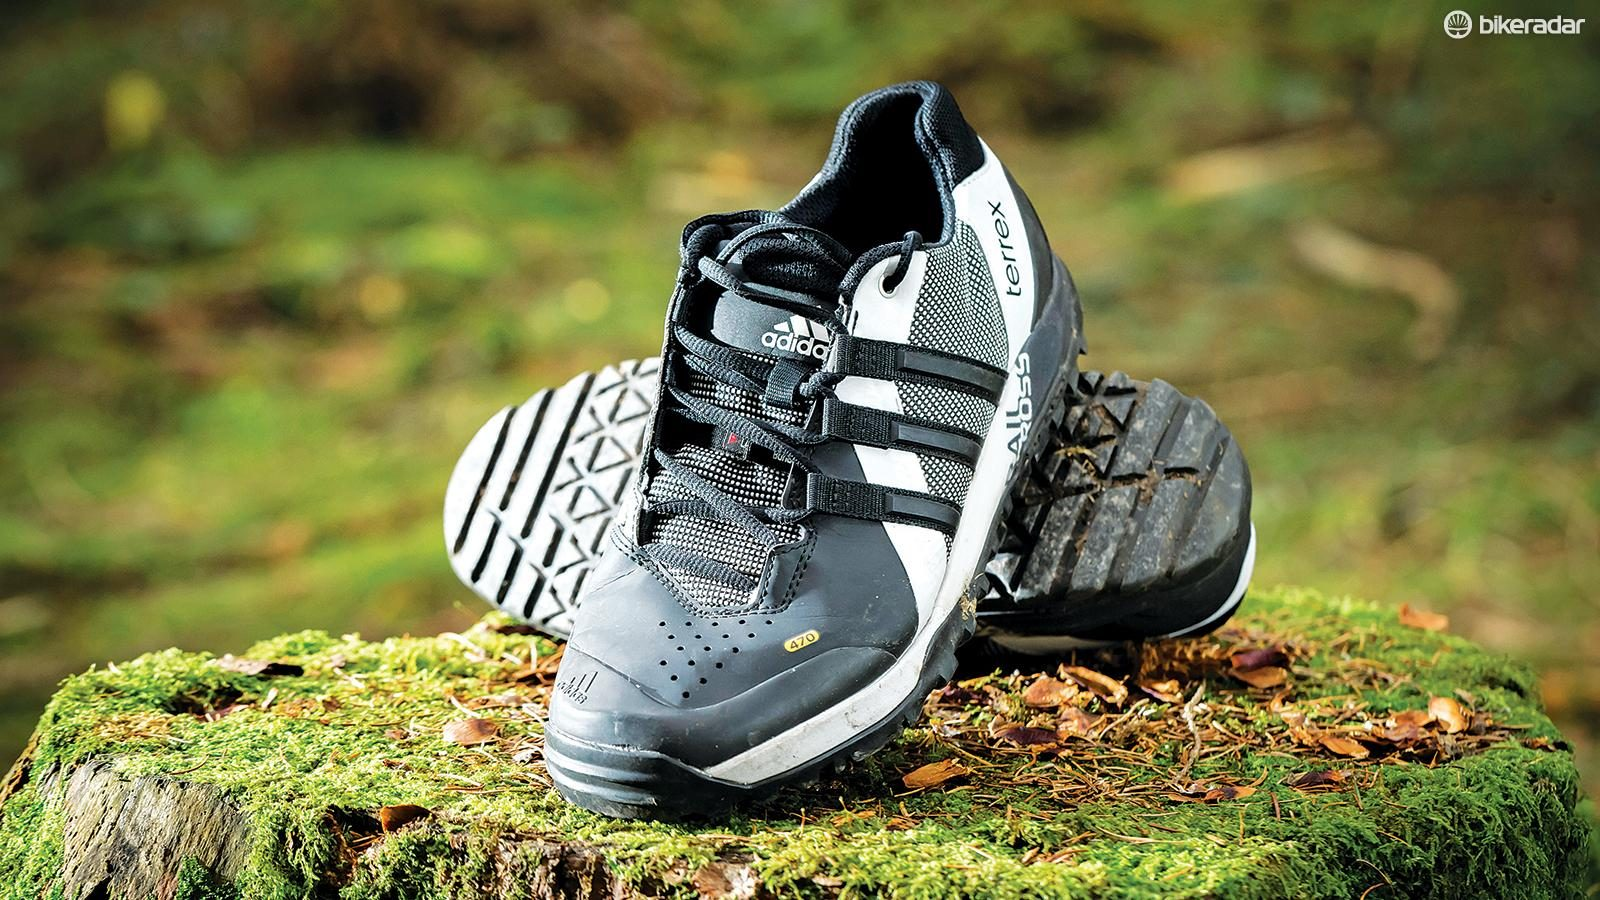 Adidas Terrex Trail Cross MTB shoes review BikeRadar